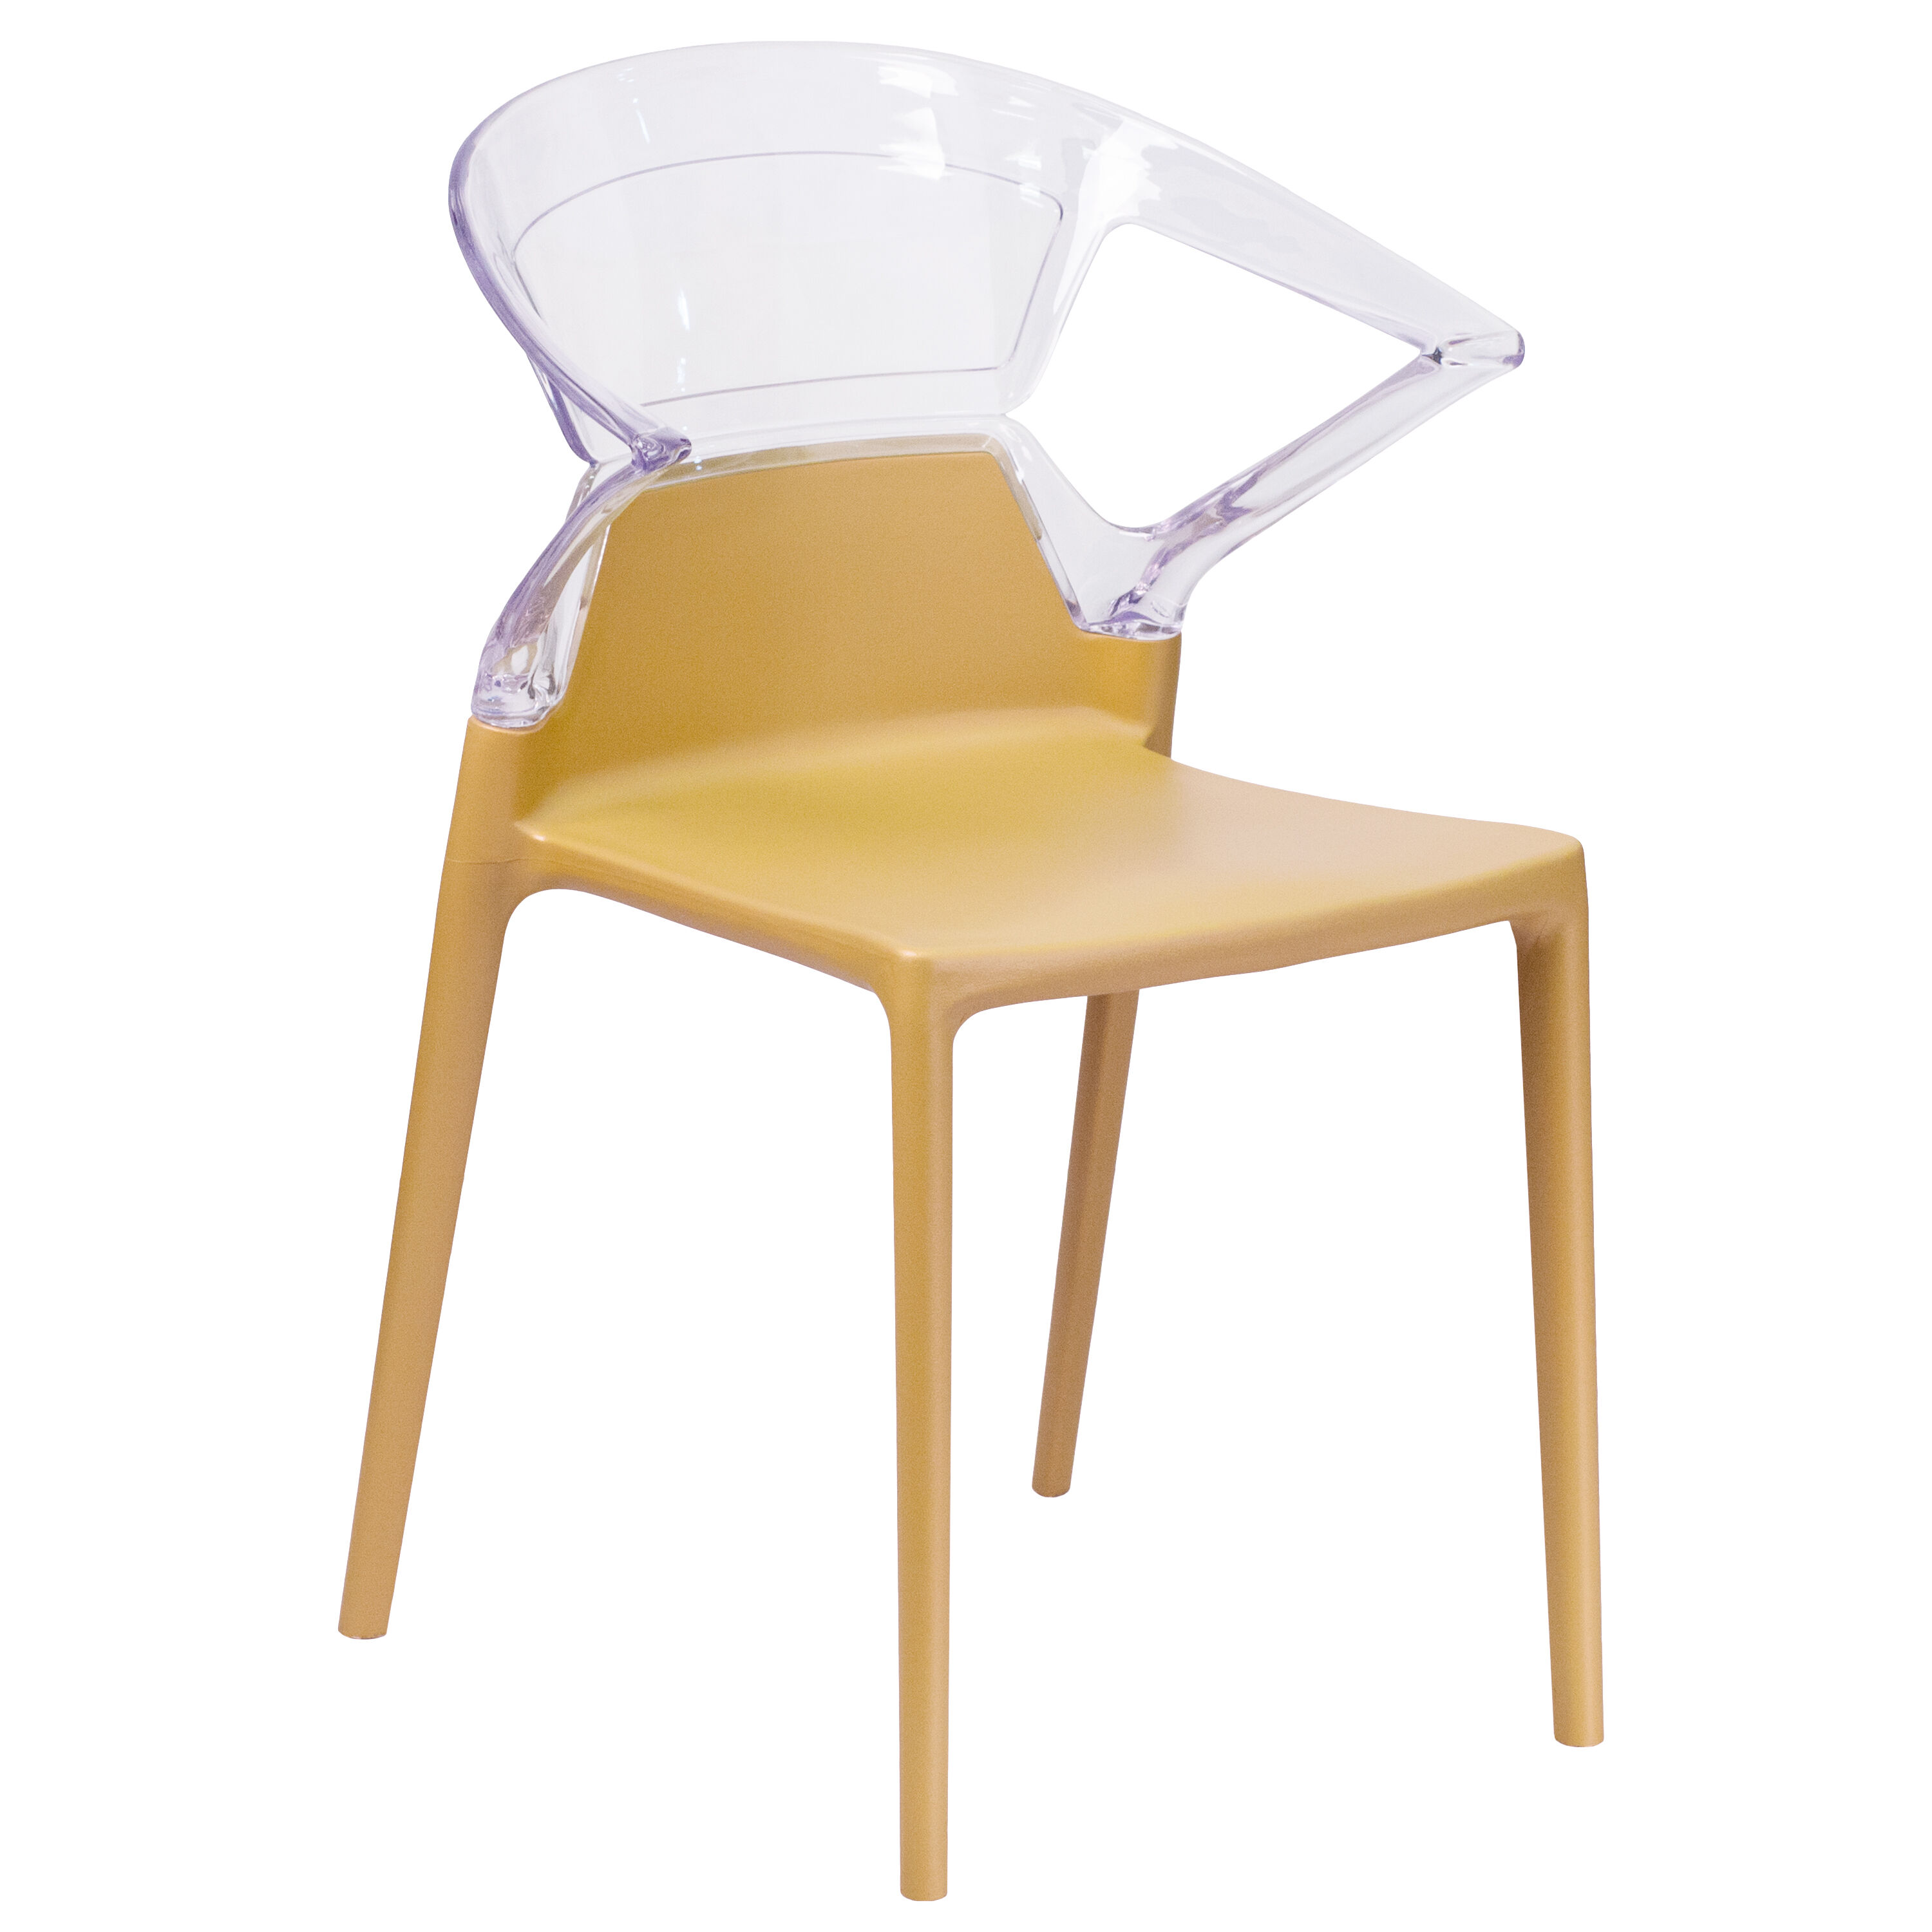 Attractive Fascination Series Plastic Stacking Side Chair With Gold Seat And  Transparent Back